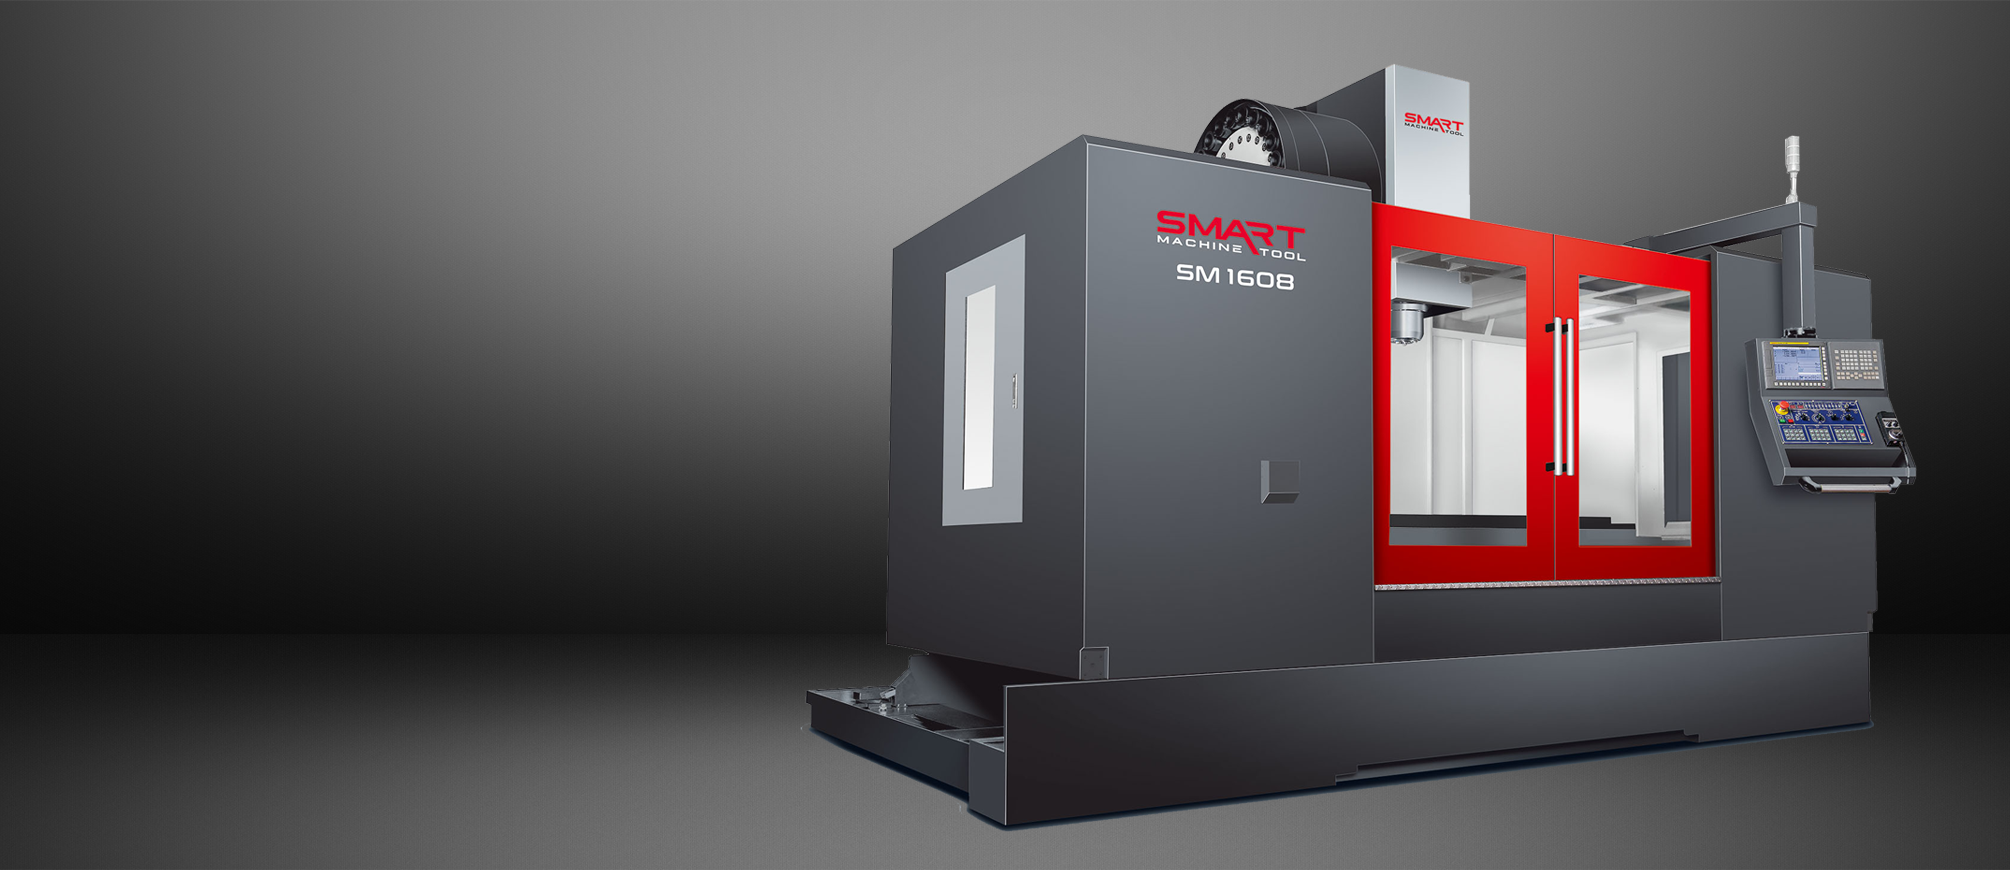 SMART SM 1608 – BOX WAY – (CAT50, 6K) Vertical Machining Centers